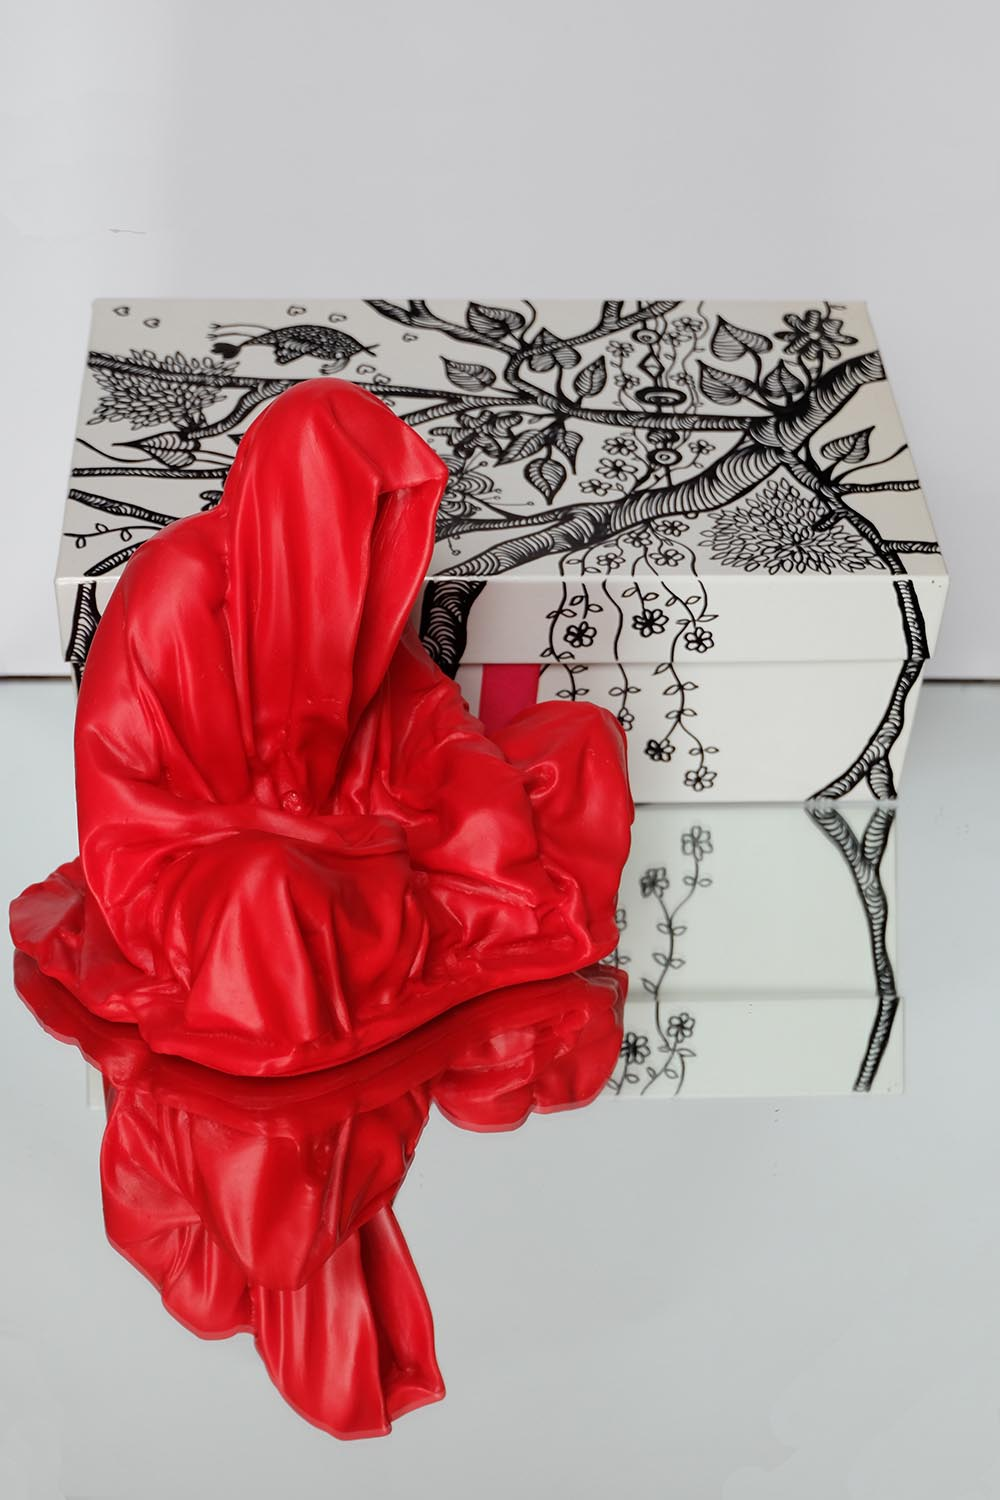 guardians of time manfred kielnhofer pink box rosa rot silvia l lueftenegger contemporary art design sulpture 2968xx